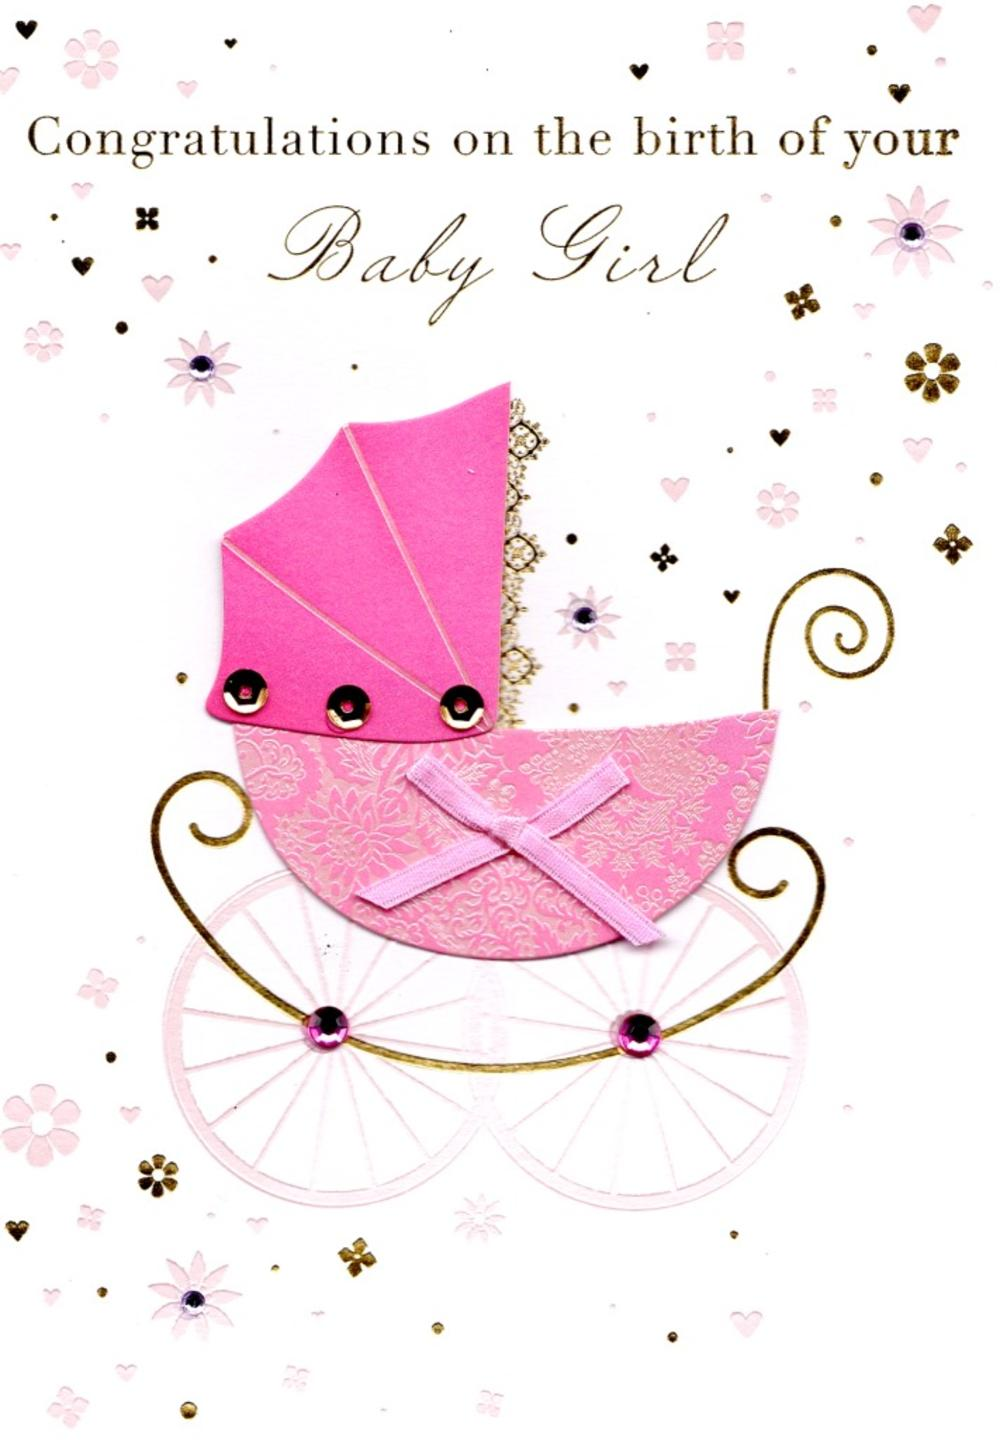 Congratulations birth new baby girl greeting card cards love kates congratulations birth new baby girl greeting card m4hsunfo Choice Image